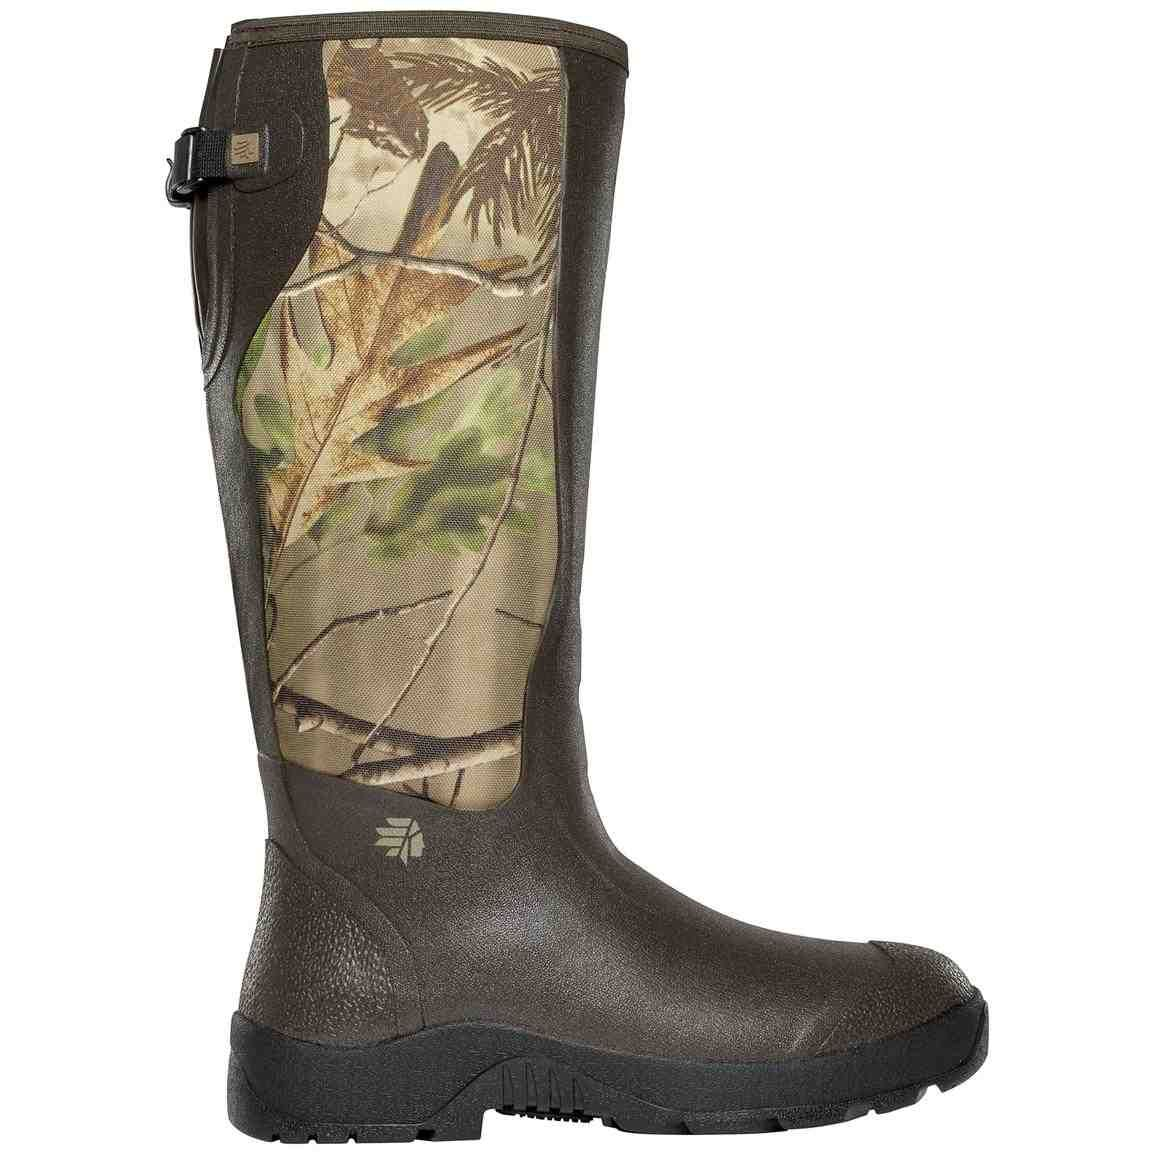 Lacrosse Rubber Snake Boots Snake Boots Boots Riding Boots